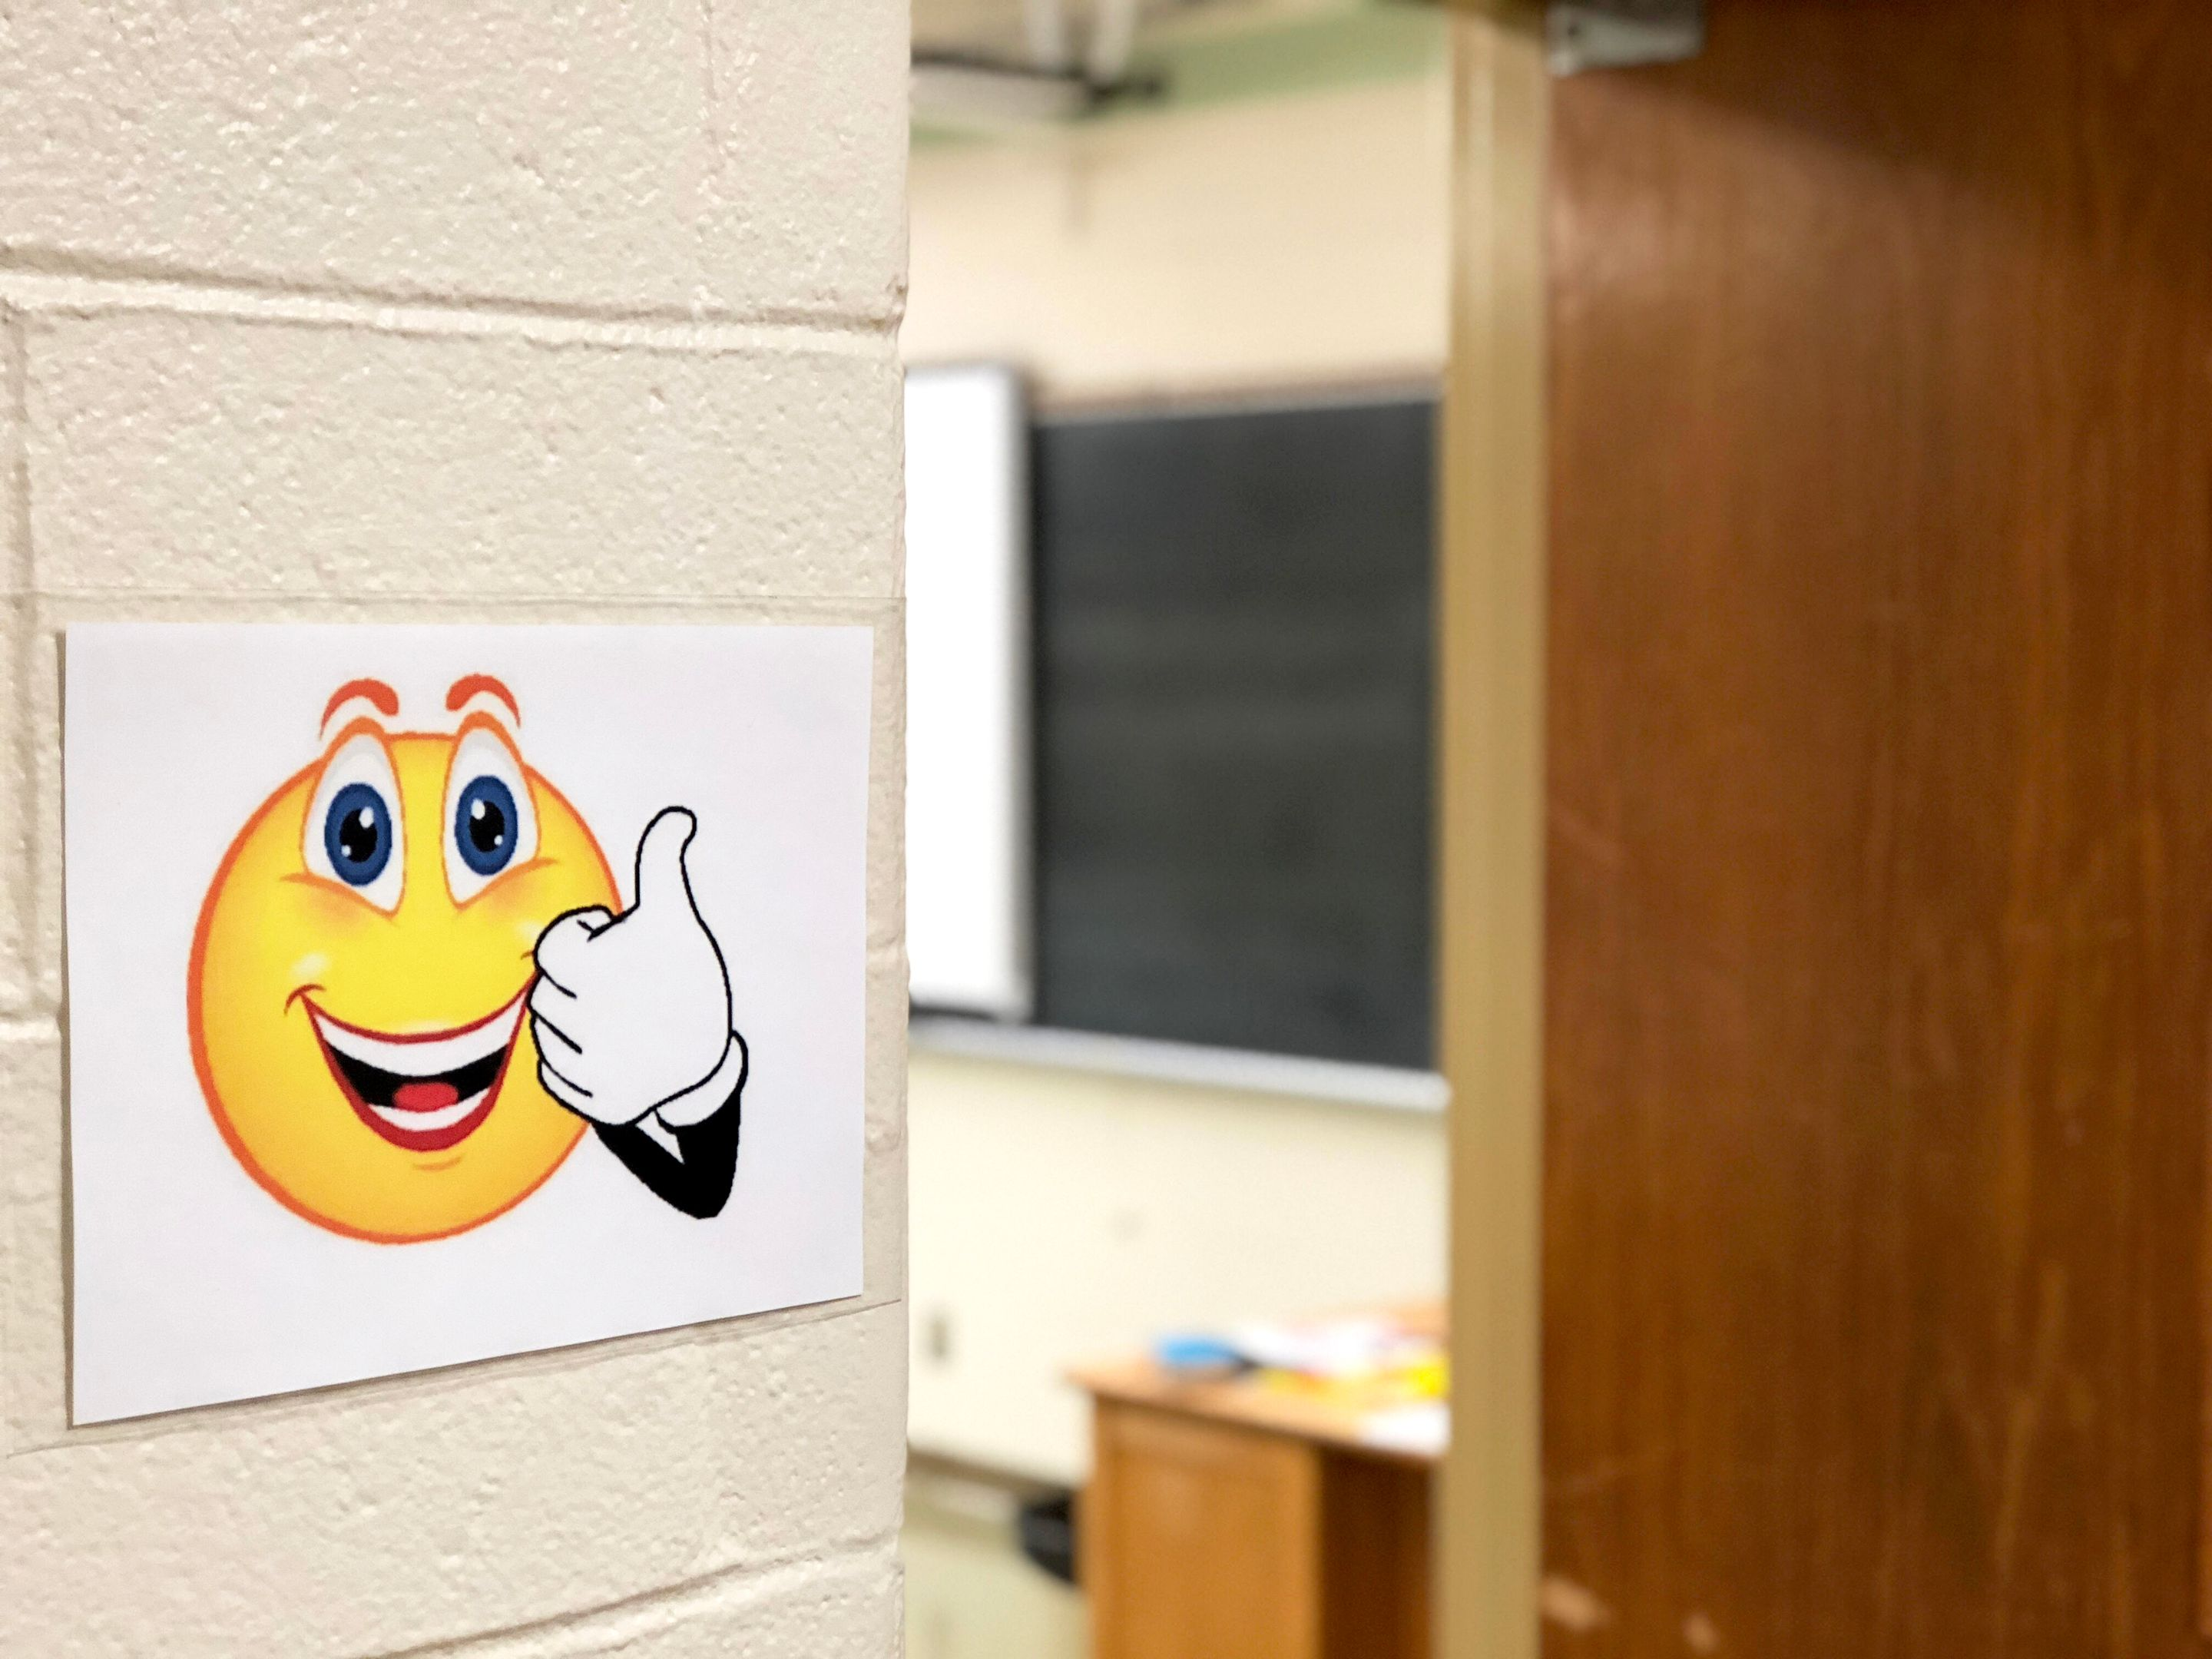 A sign with a smiley face and a thumbs up indicates an open classroom at North Valley Regional in New Jersey.